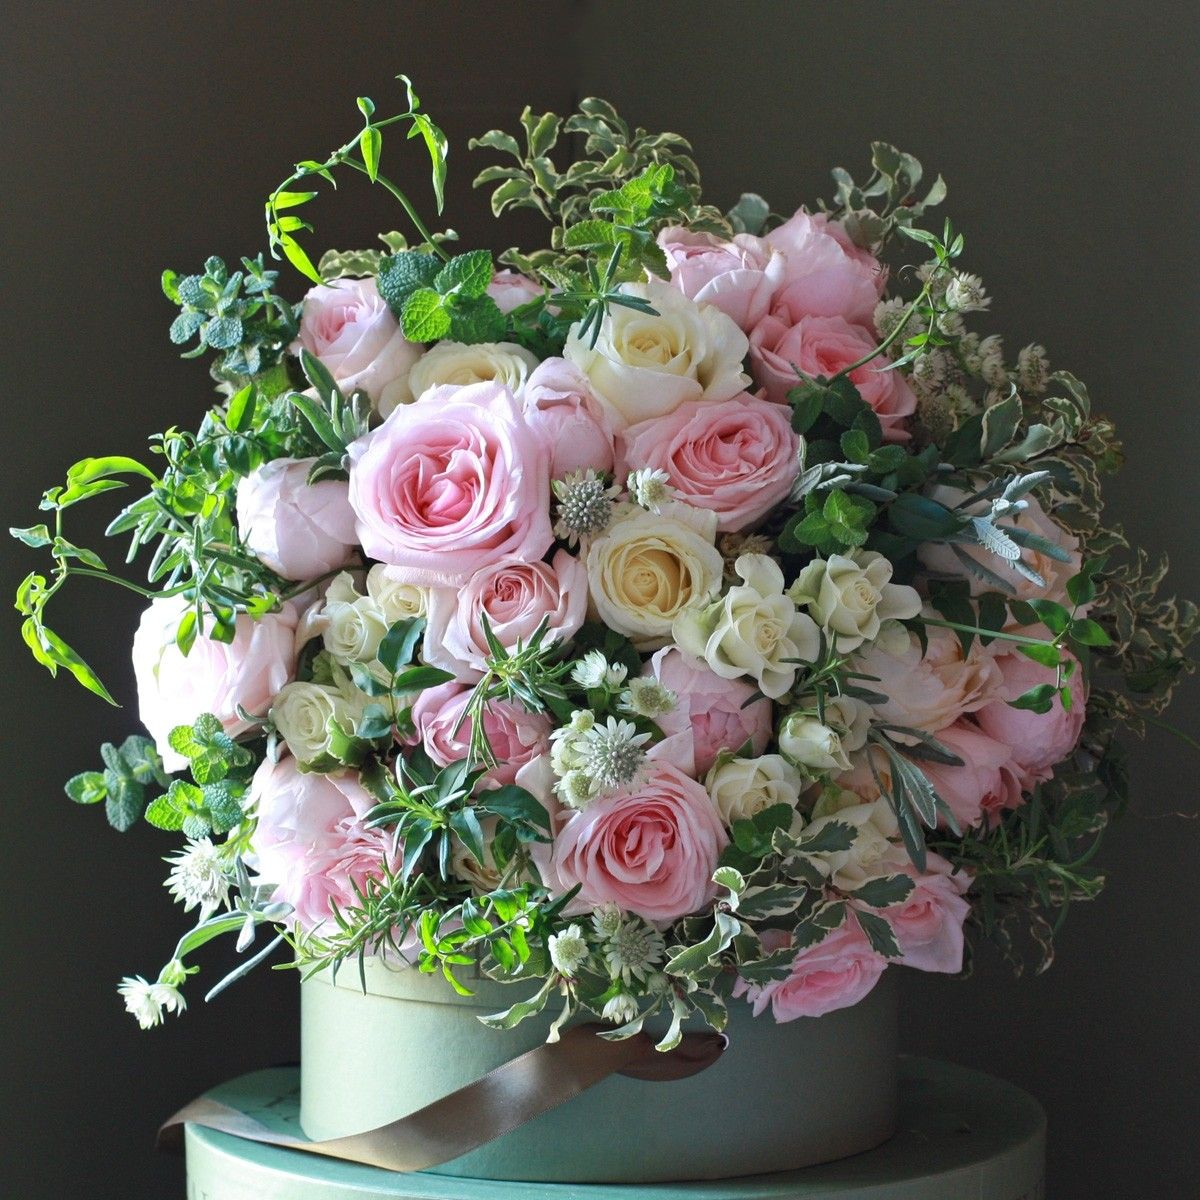 A wonderfully scented luxury bouquet scentedgardenroses httpwww a wonderfully scented luxury bouquet scentedgardenroses httprealflowers izmirmasajfo